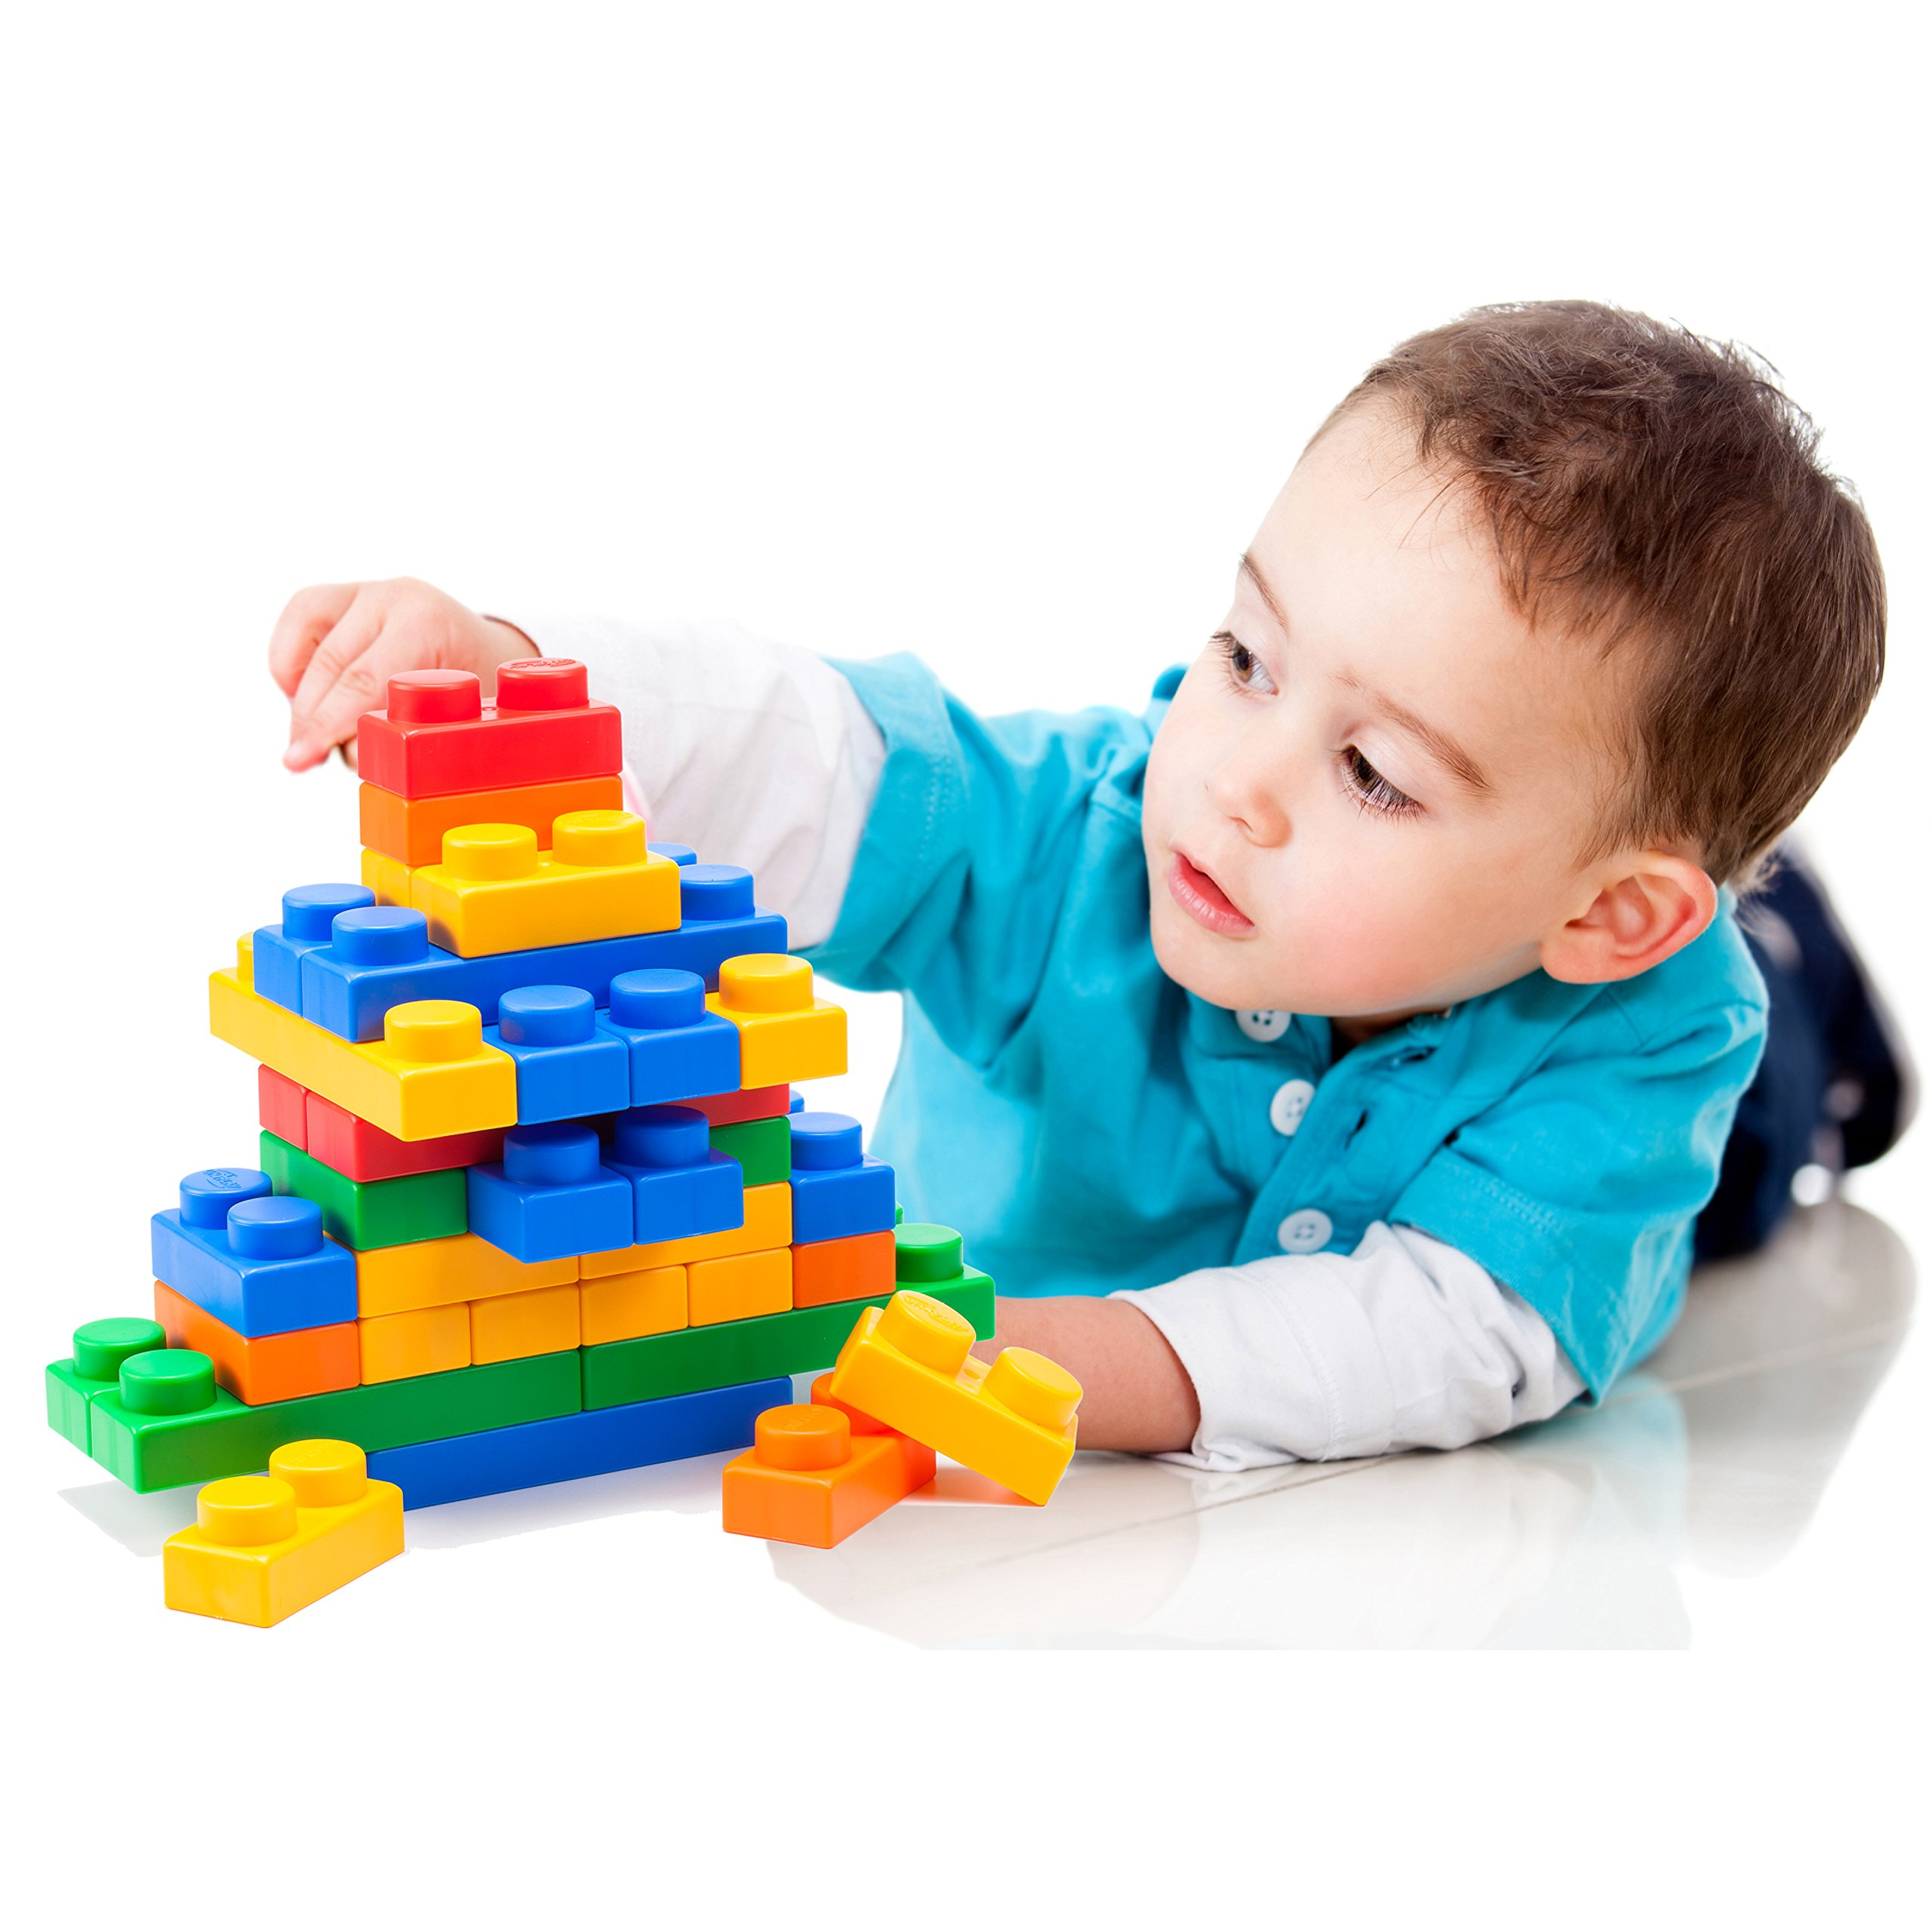 UNiPLAY Soft Building Blocks - Basic Series (60pcs), Educational and Creative Toys, Food Grade Material(Antibacterial), Non-Toxic,100%SAFE for Kids, Toddlers, Baby, Preschoolers